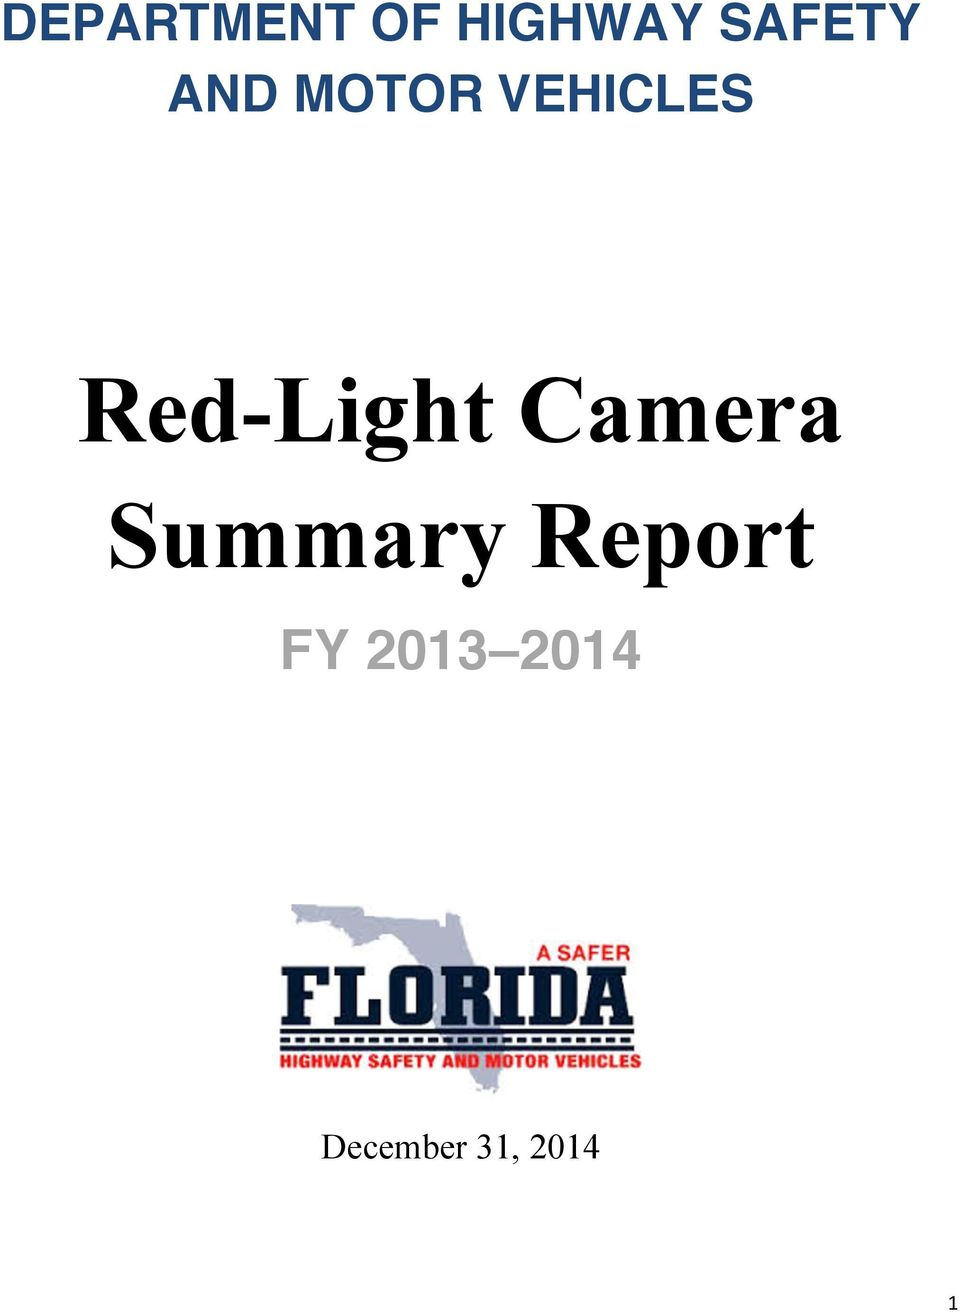 Red-Light Camera Summary